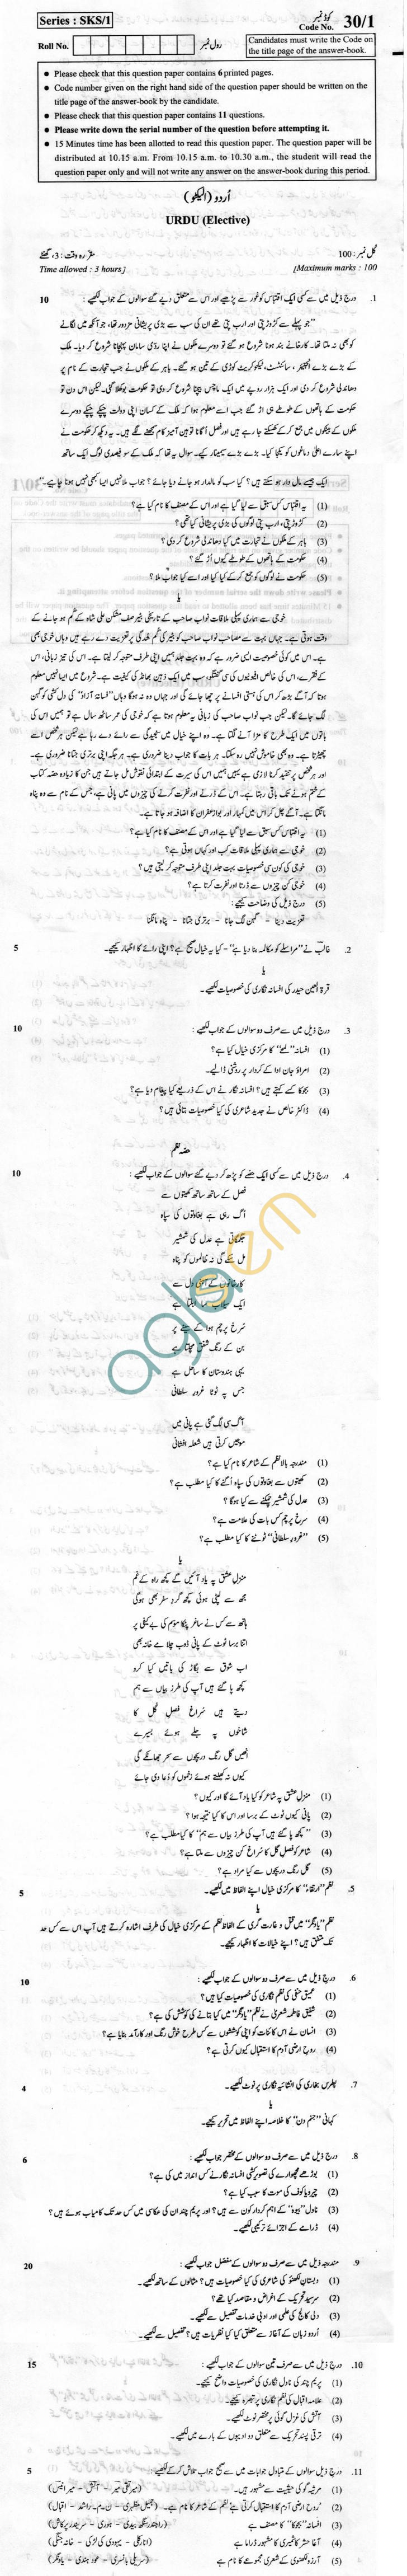 CBSE Board Exam 2013 Class XII Question Paper - Urdu (Elective)